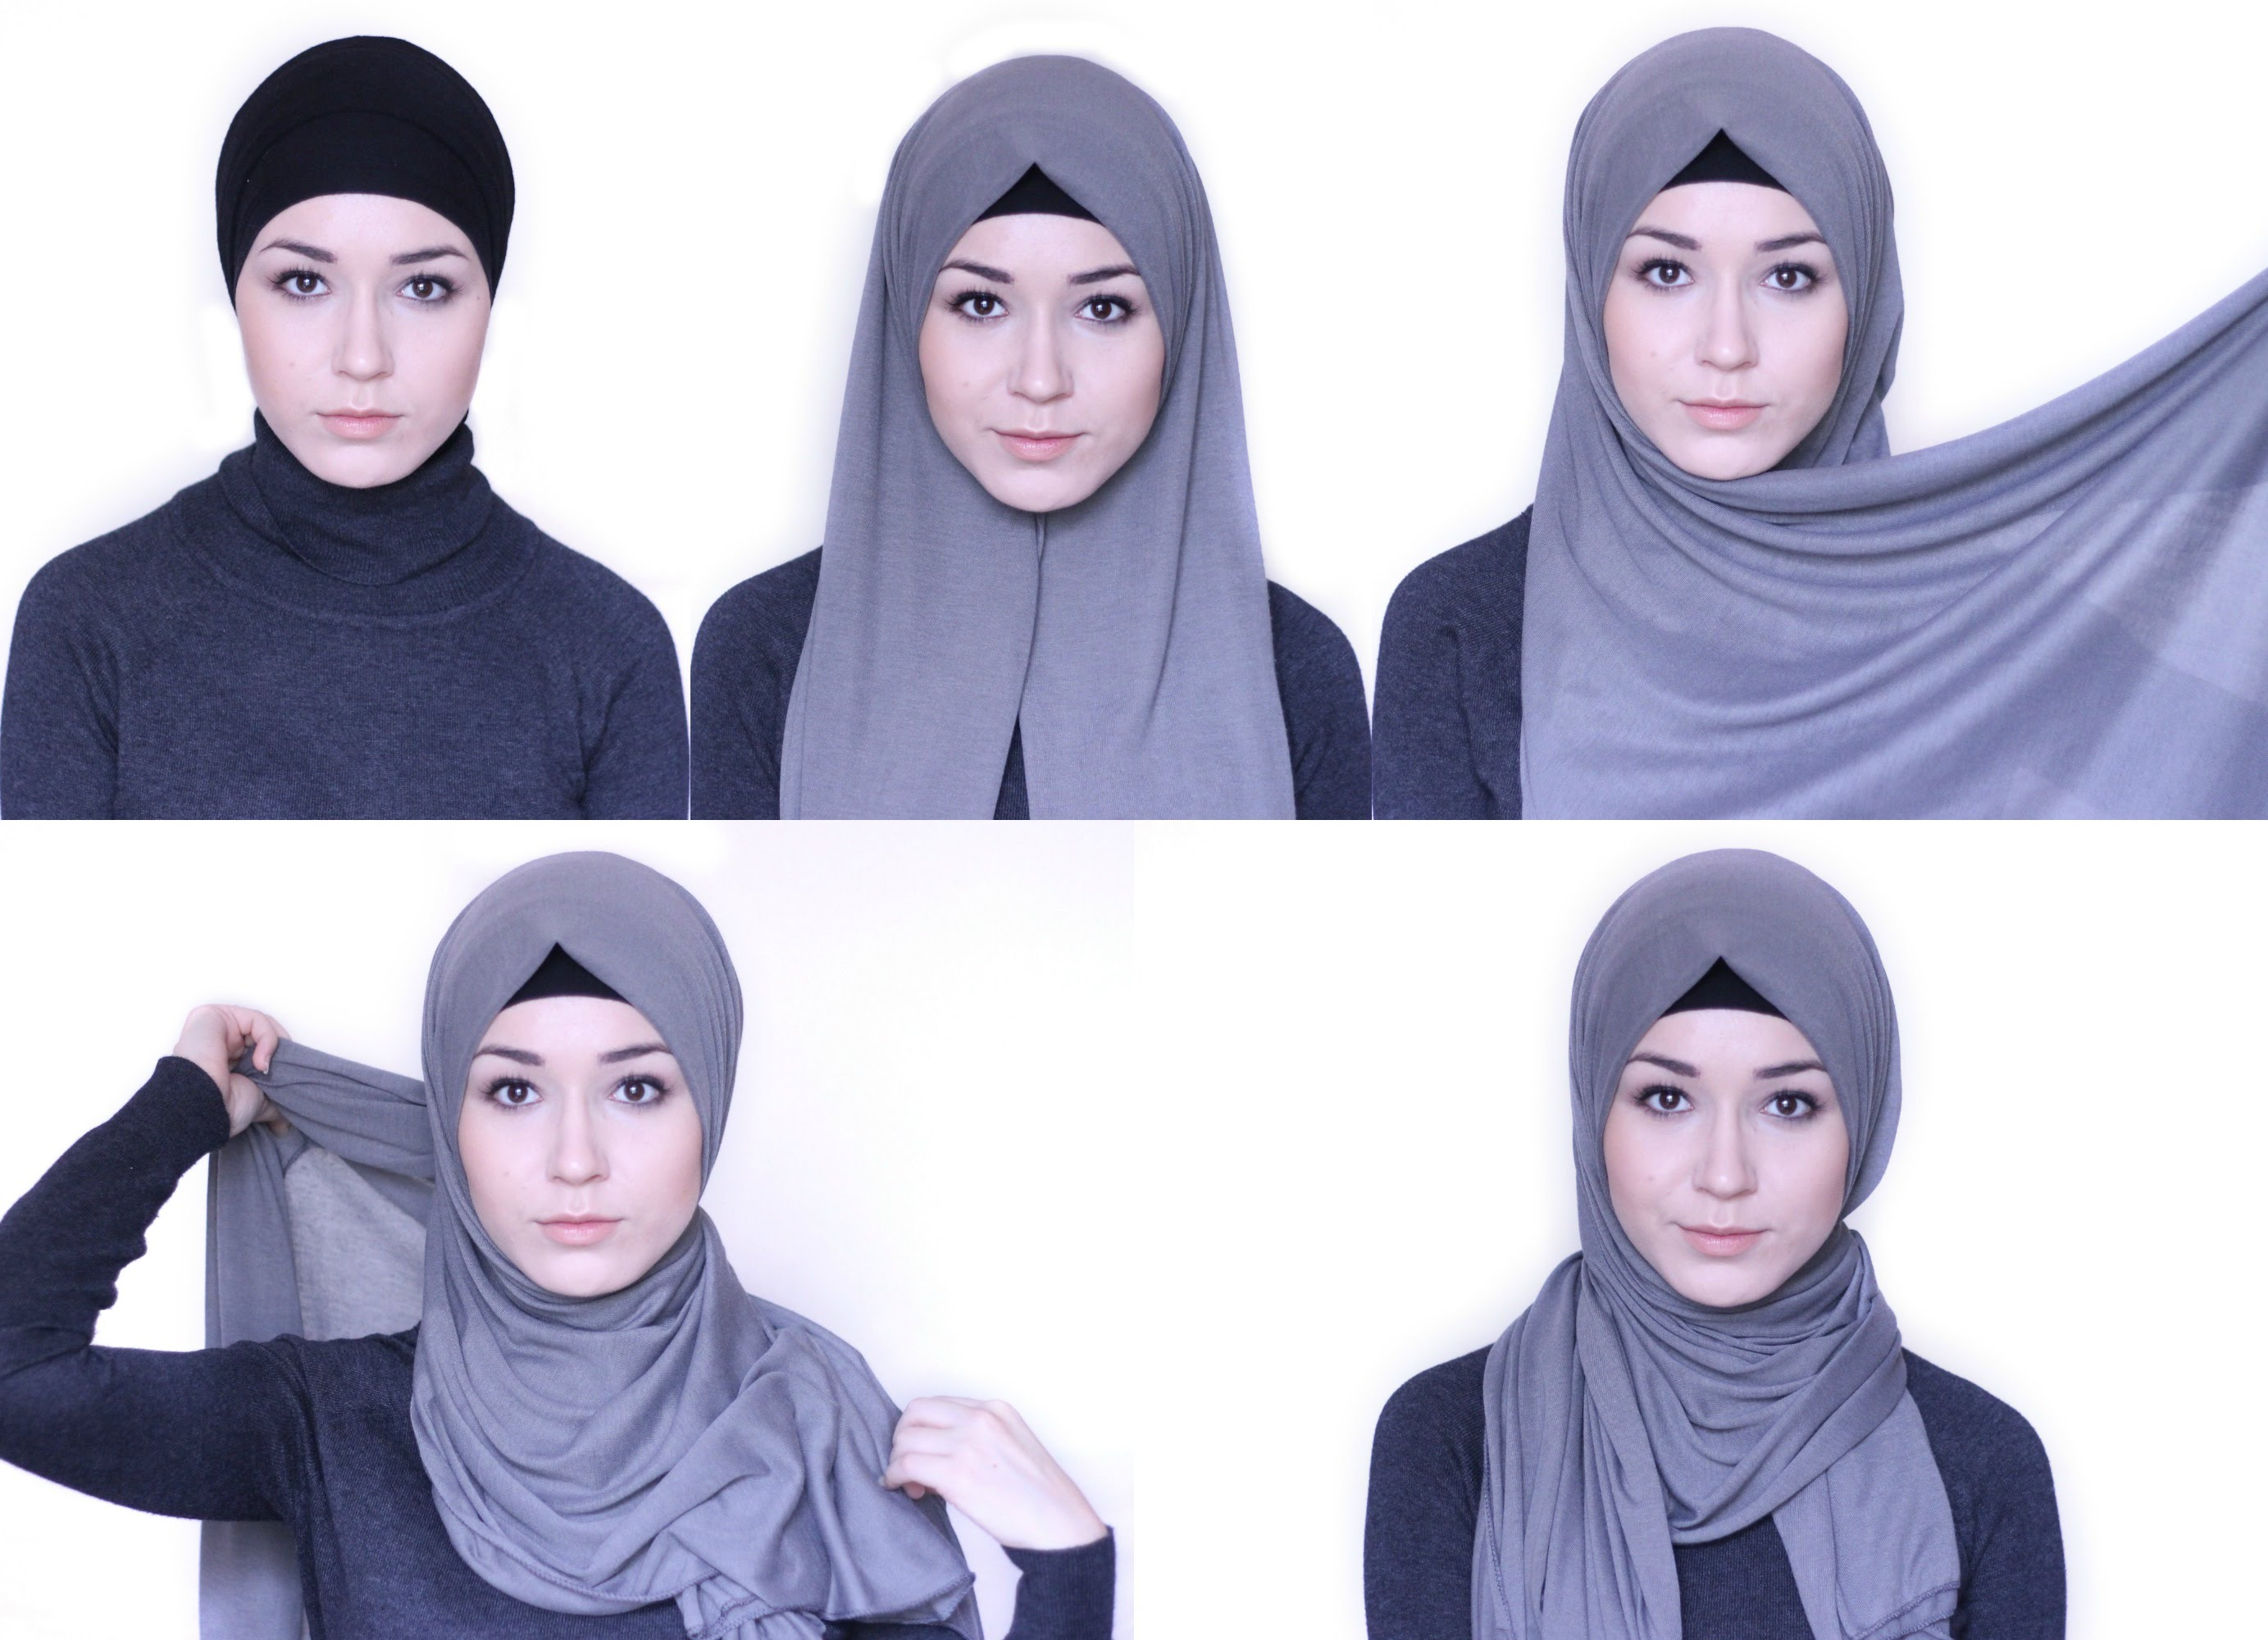 How To Select The Right Hijab Style To Suit Your Look